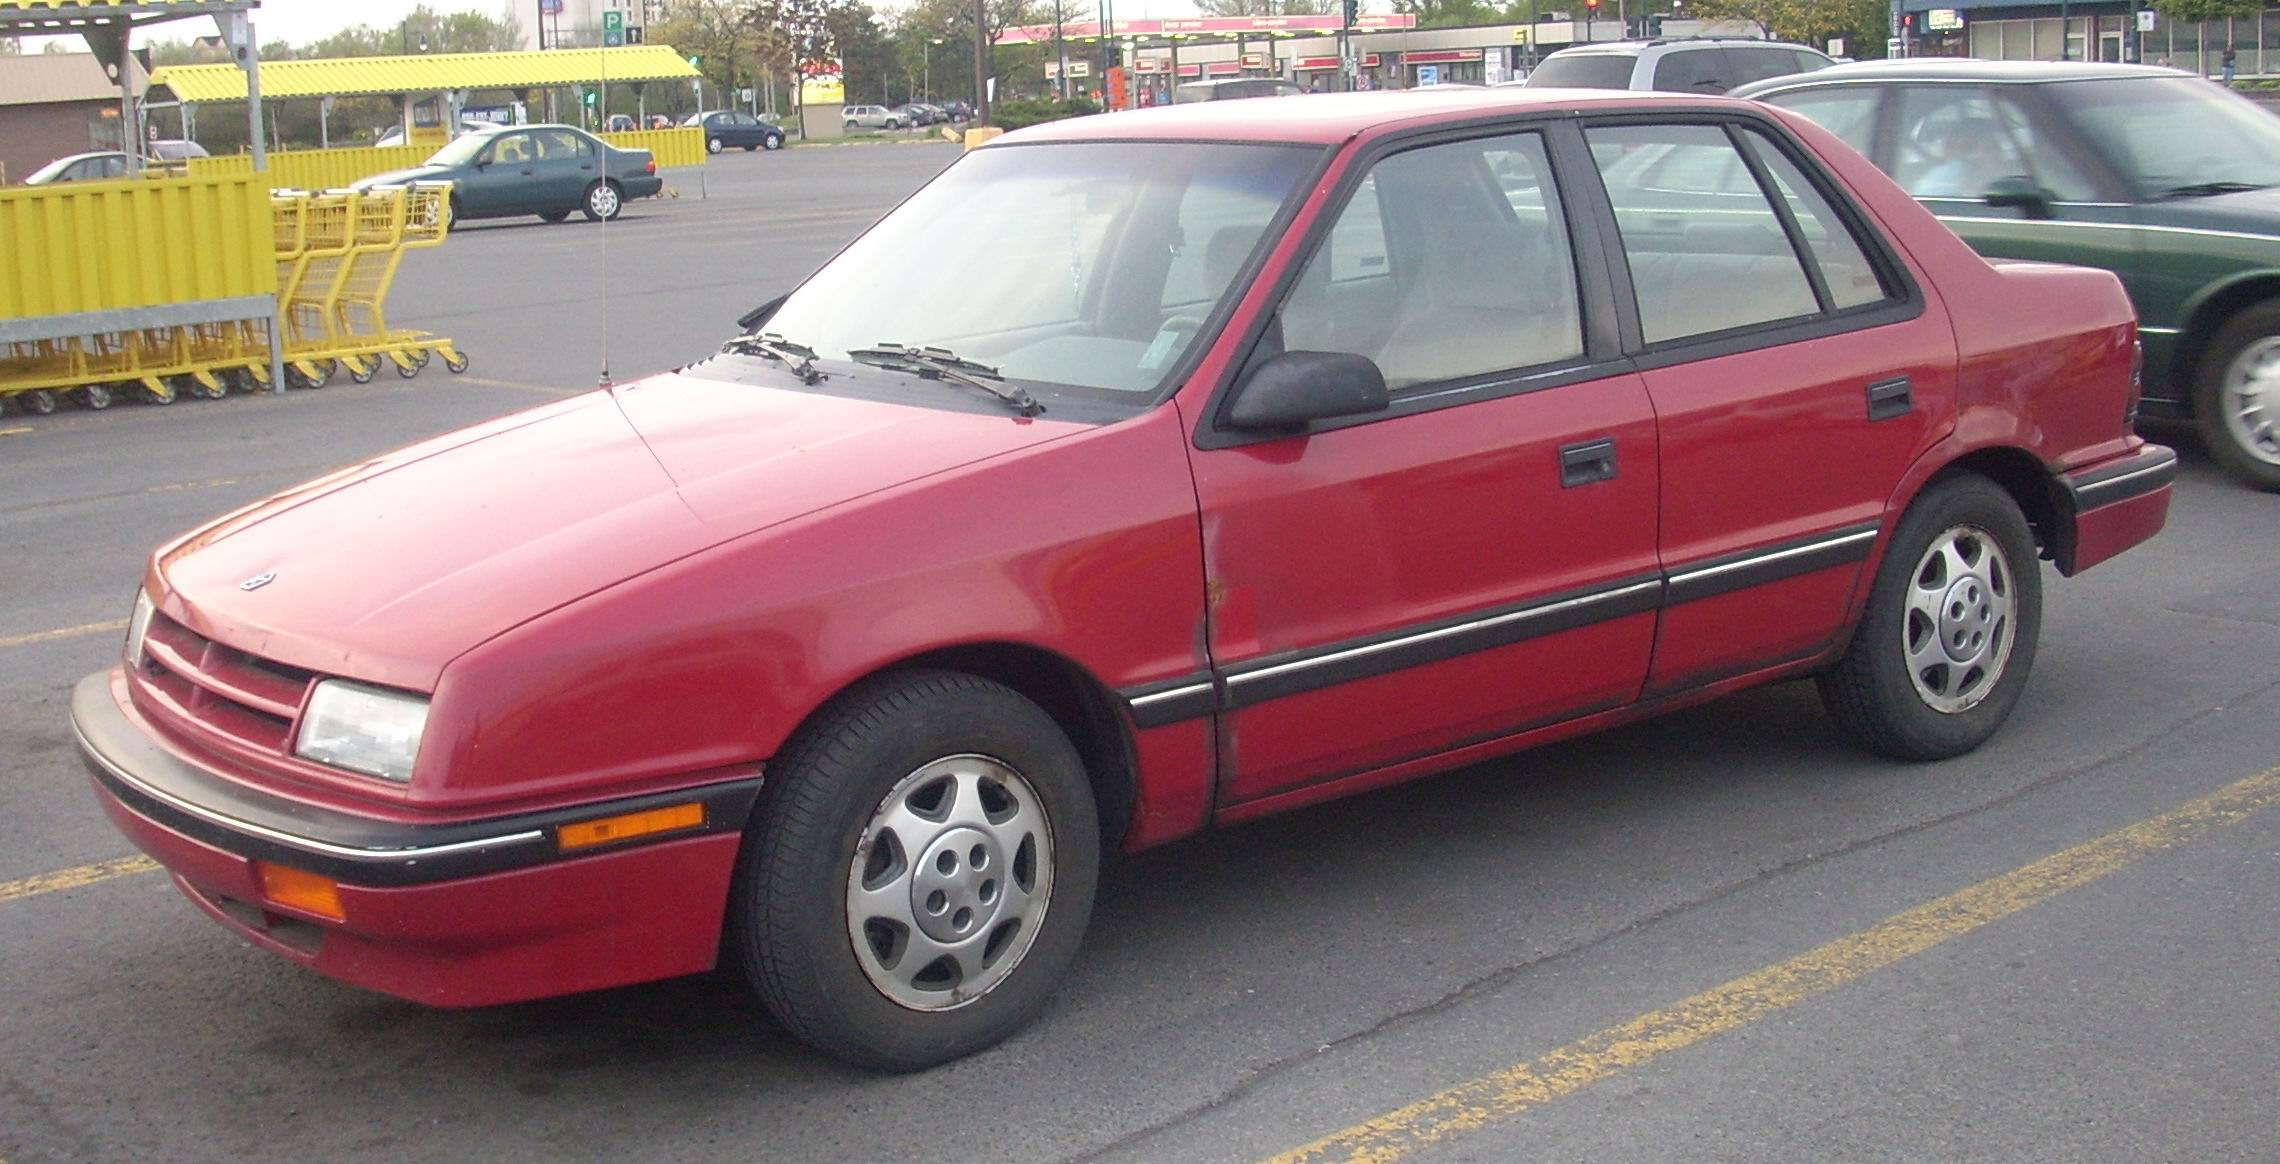 File:'89-'91 Dodge Shadow 5-Door.JPG